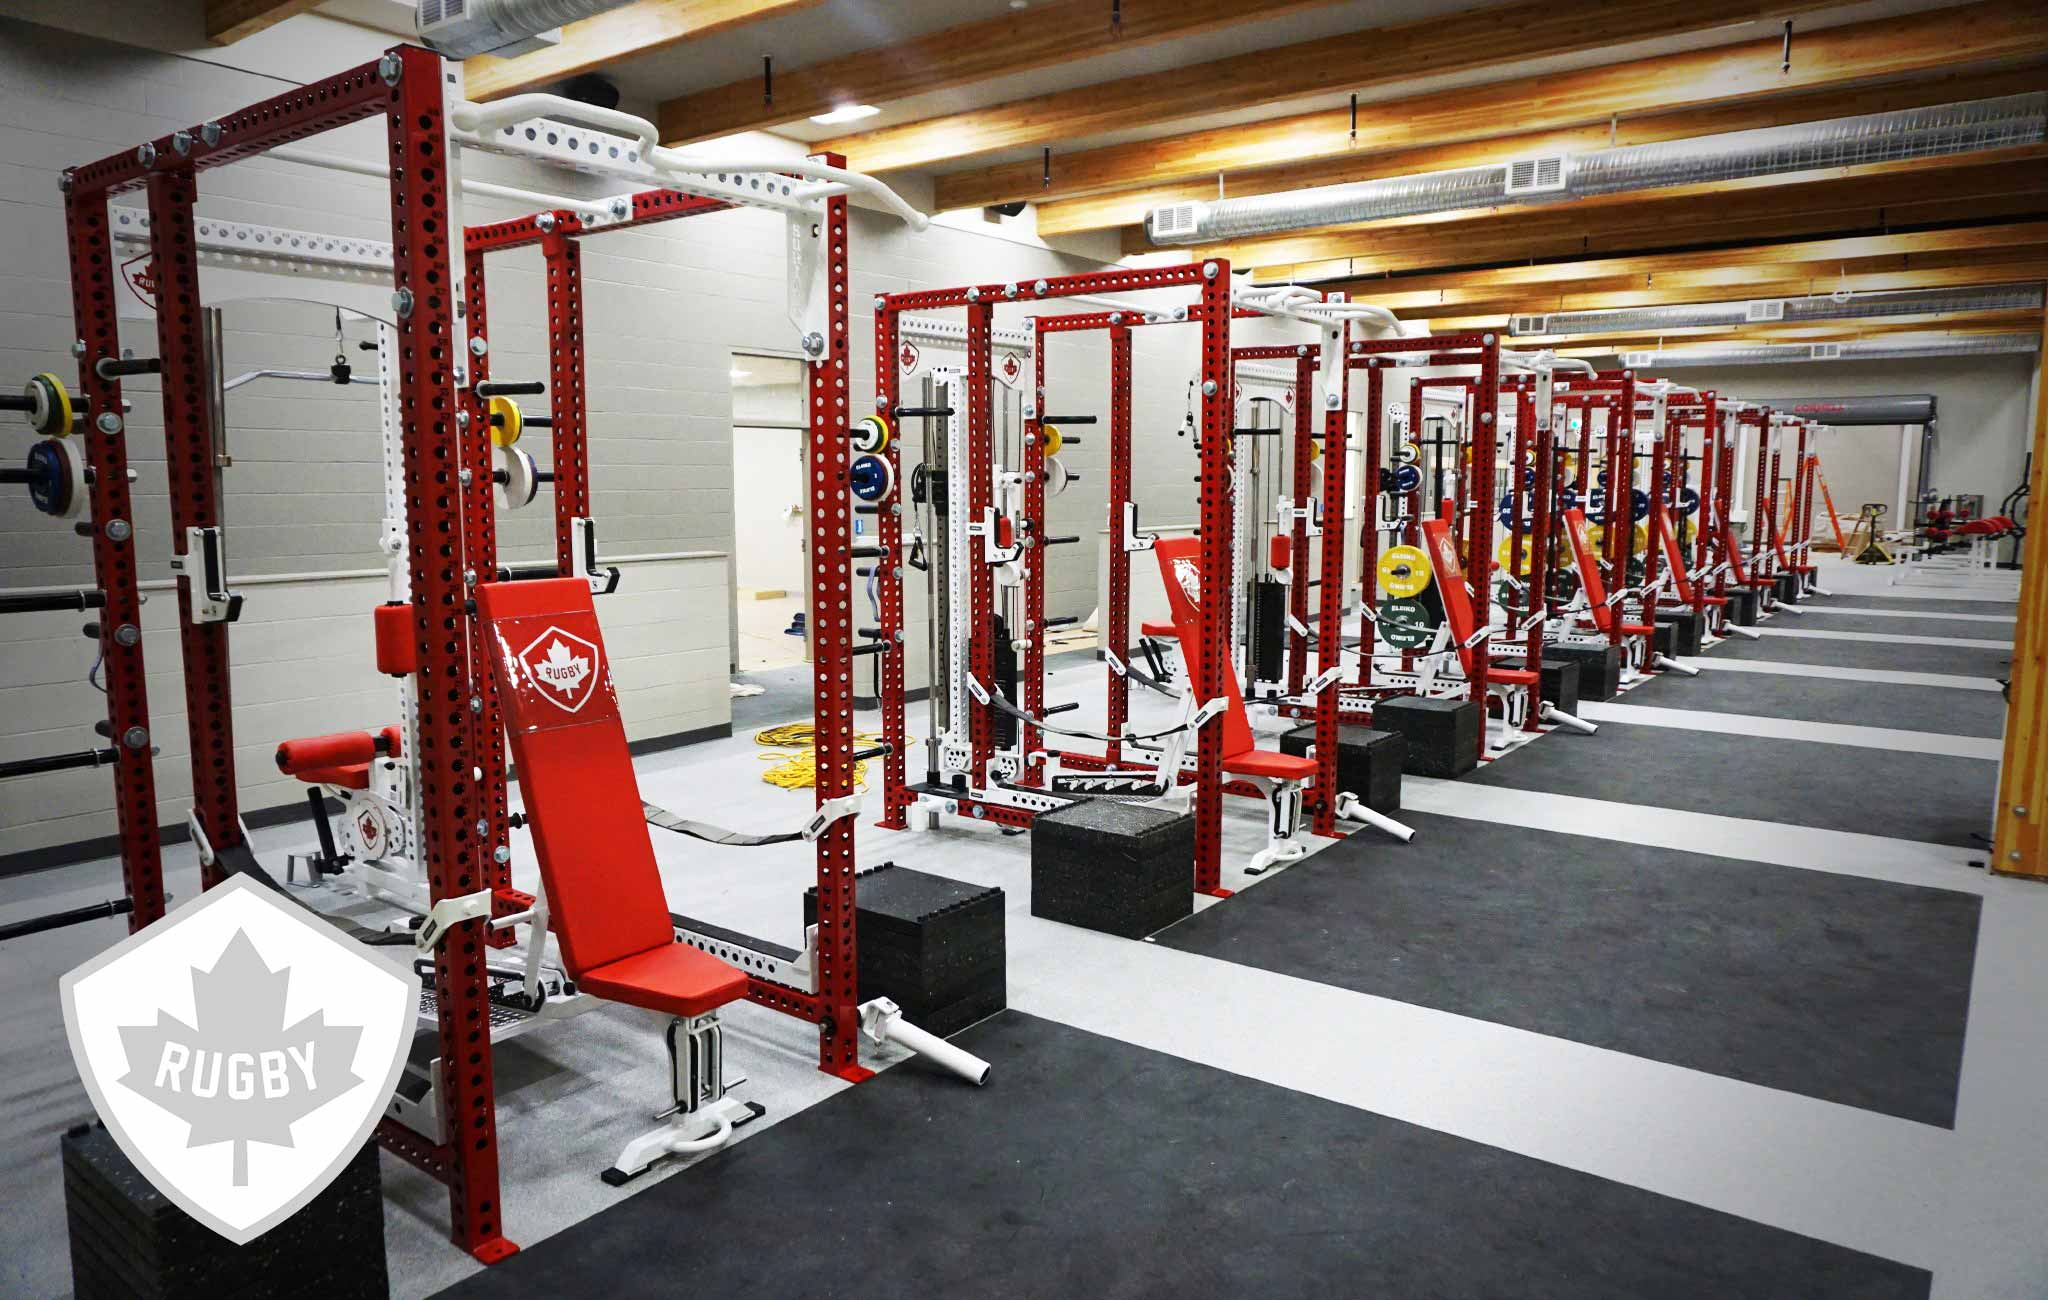 Rugby Canada Sorinex strength and conditioning facility